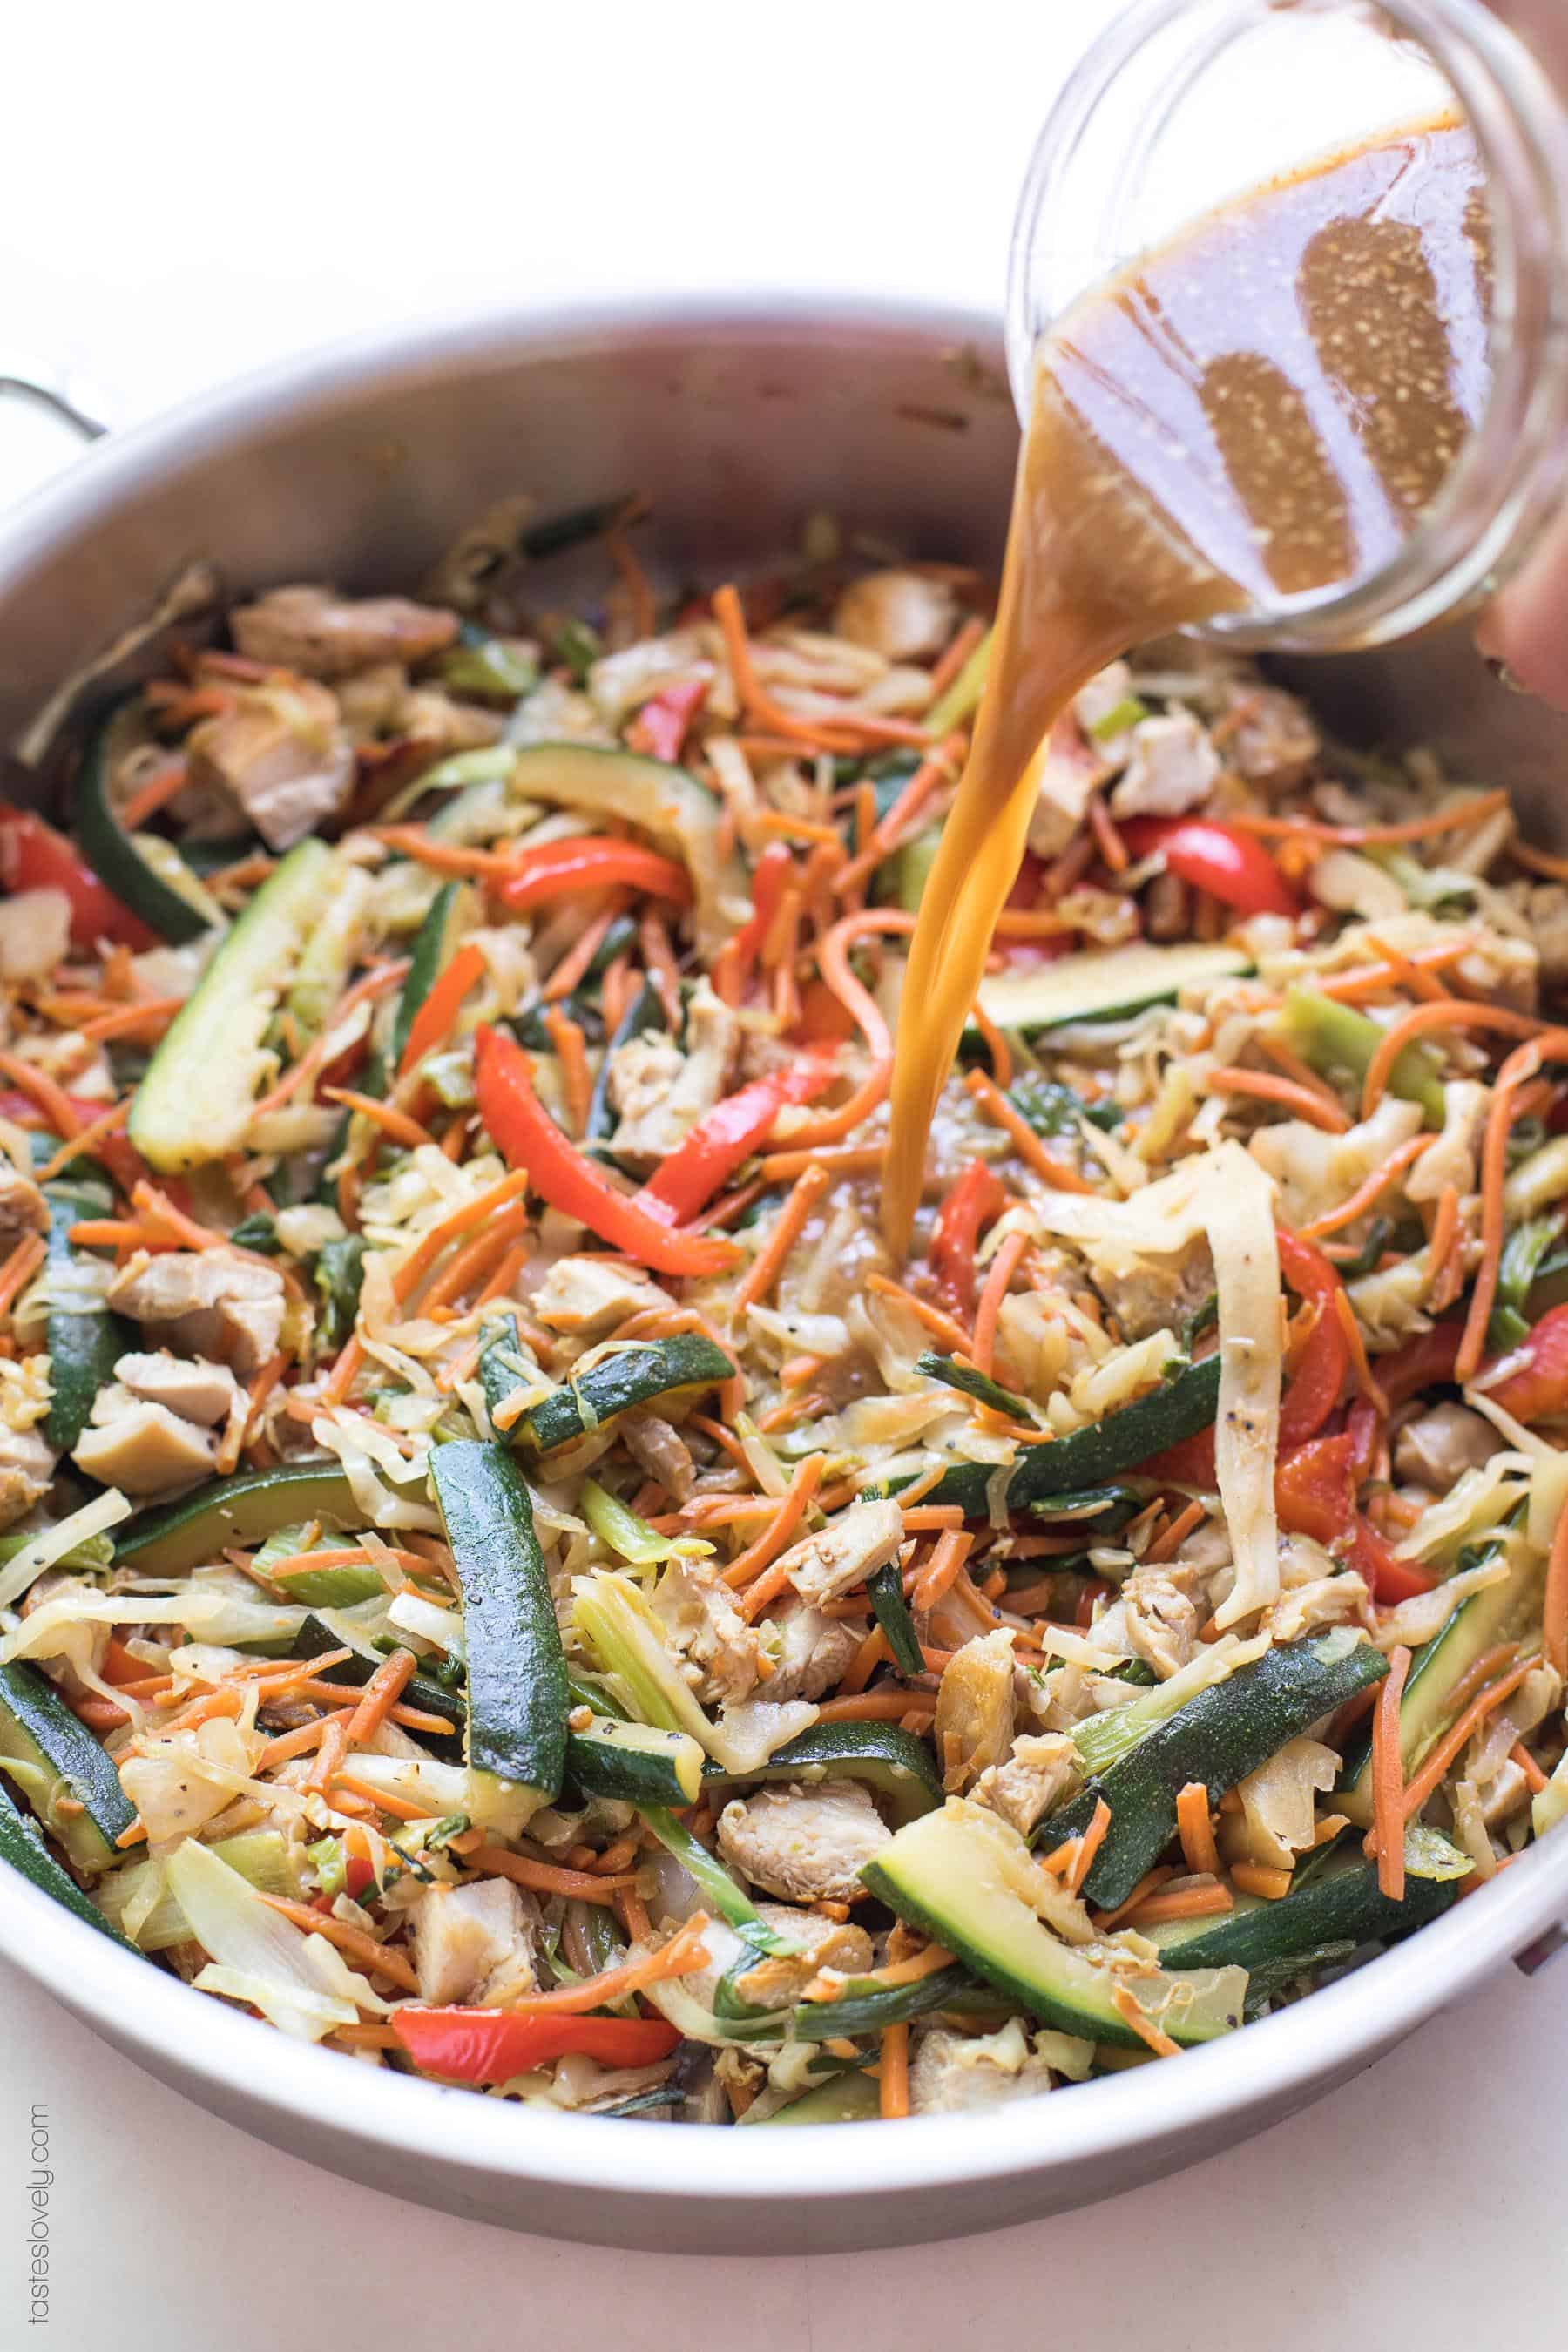 Stir fry sauce poured into a pan of chicken stir fry